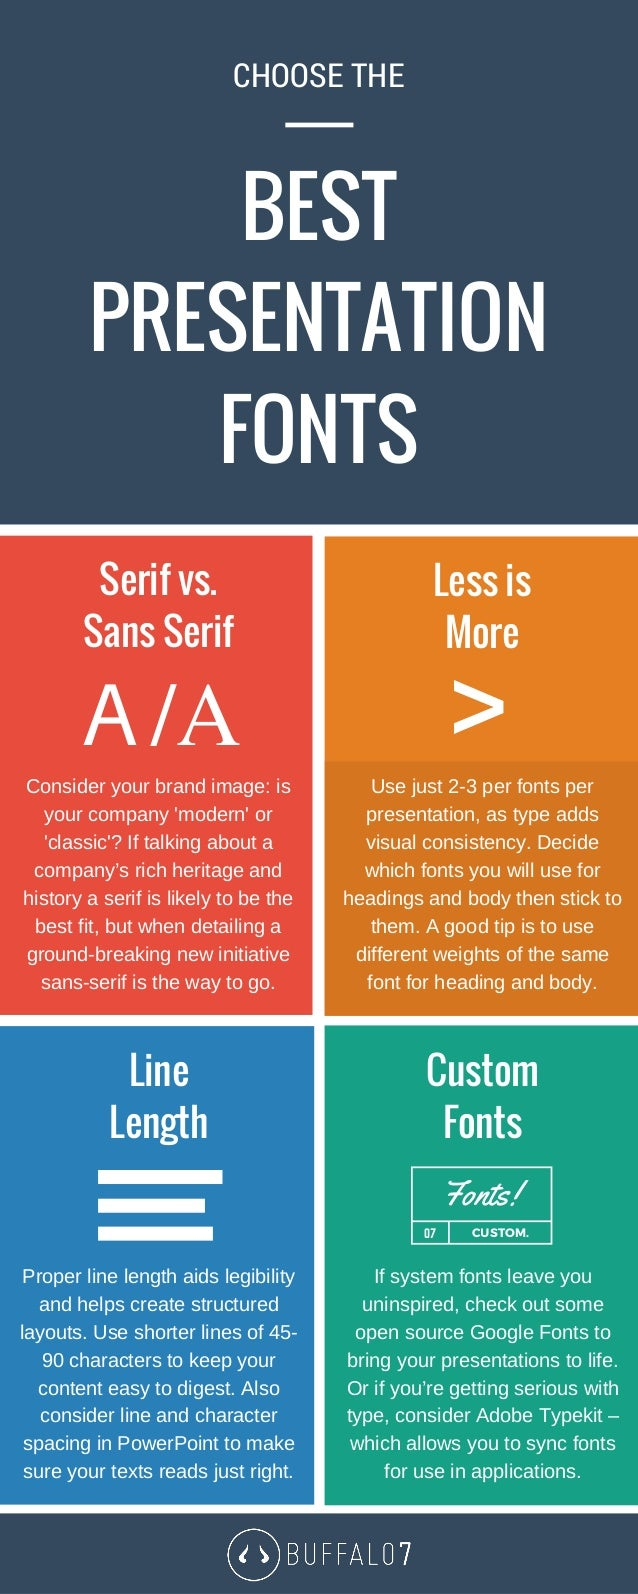 10 Professional Fonts For The Best Website Designs in 2016